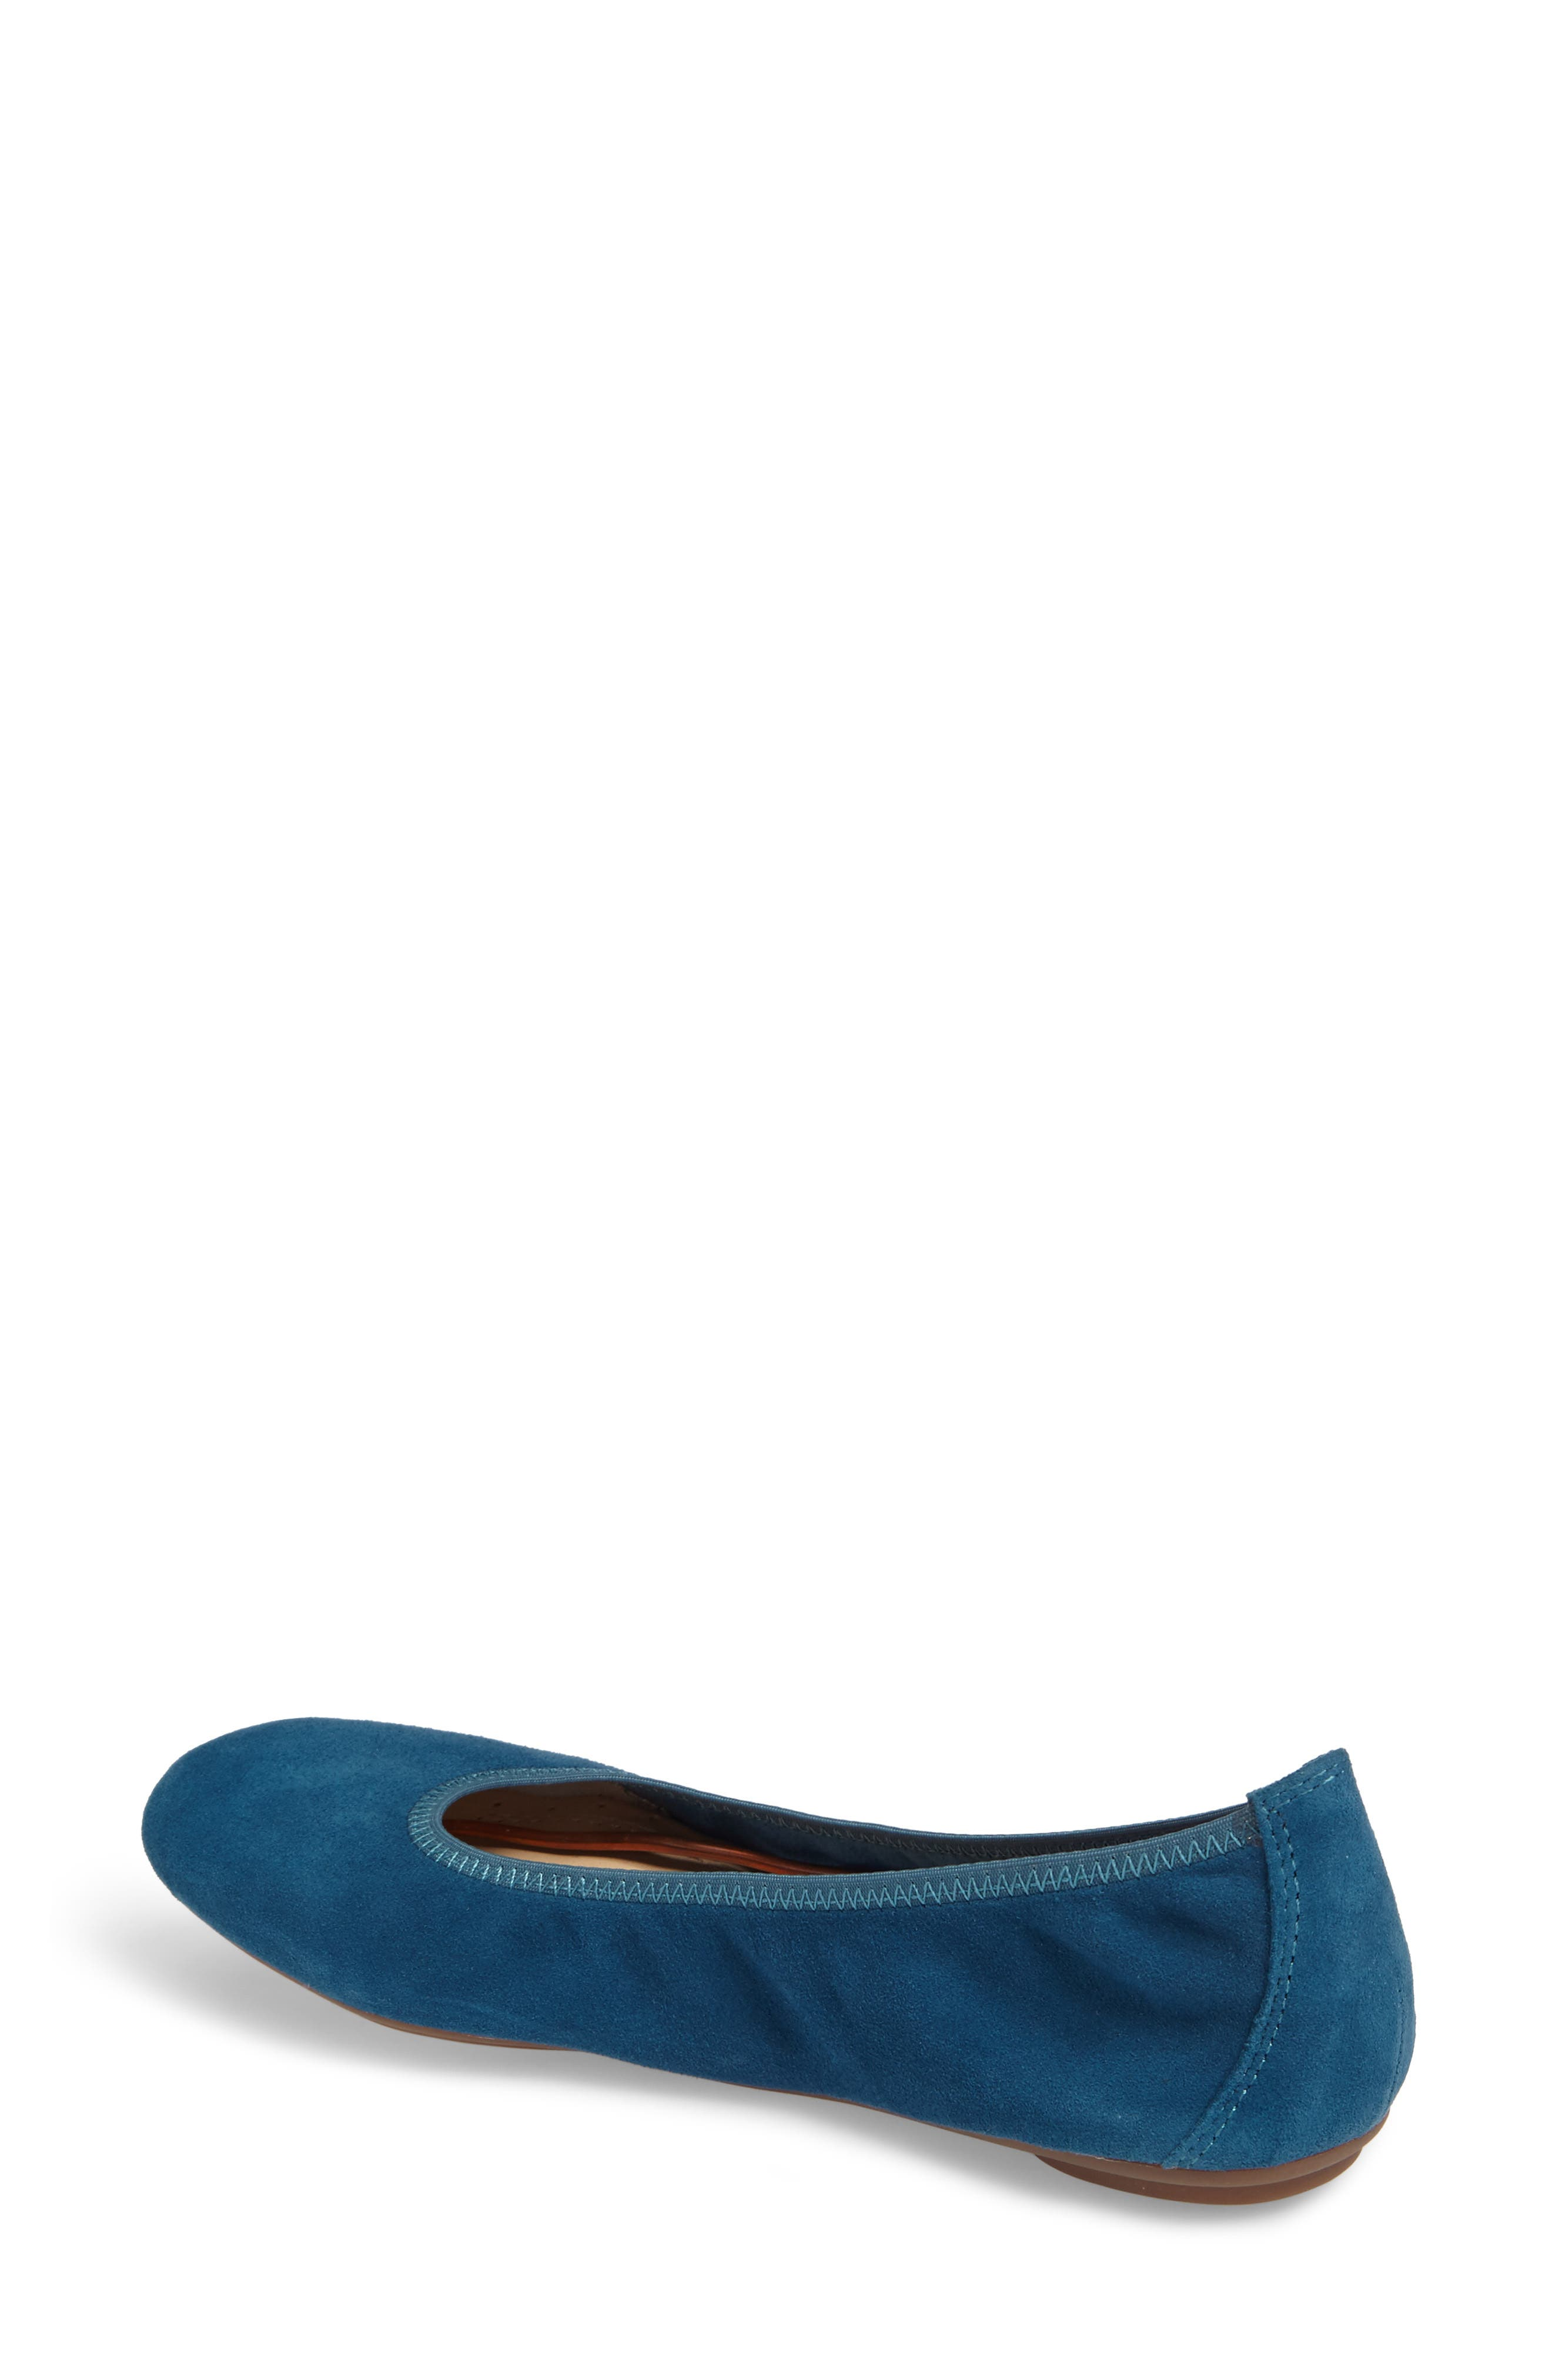 Alternate Image 2  - Hush Puppies® 'Chaste' Ballet Flat (Women)